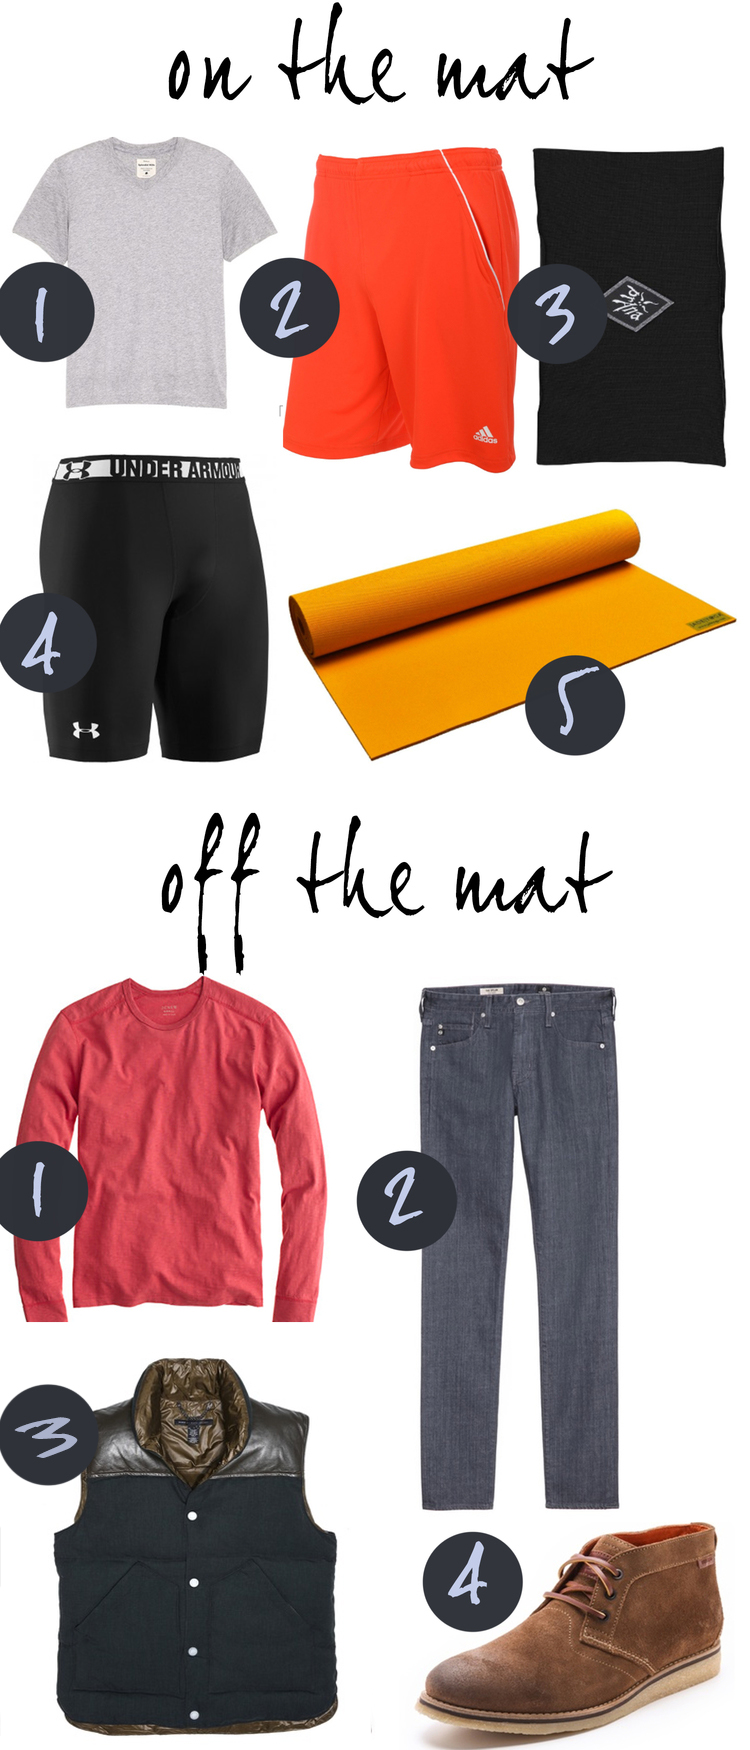 Pin it! Men's clothes for on the mat and off the mat